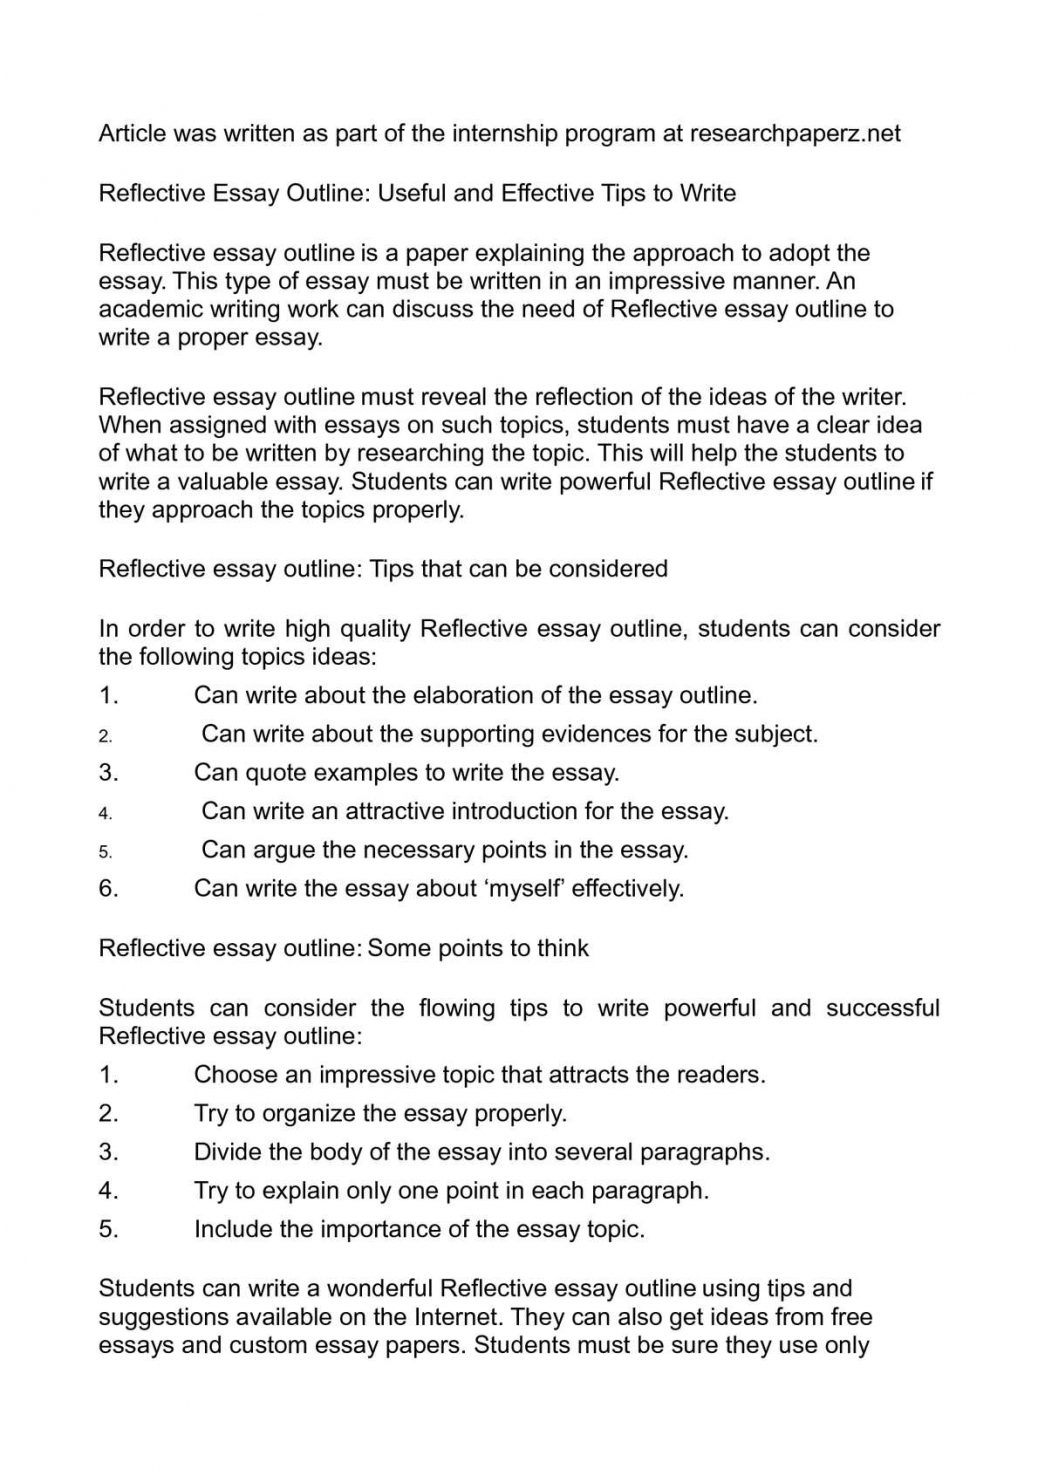 009 Research Paper Already Written Papers For Free Examples Of Reflective Writing Essays P1 Essay Outline Homework Academic Service Avessaymtbb Infra Image Inspirations Unique Pre Full